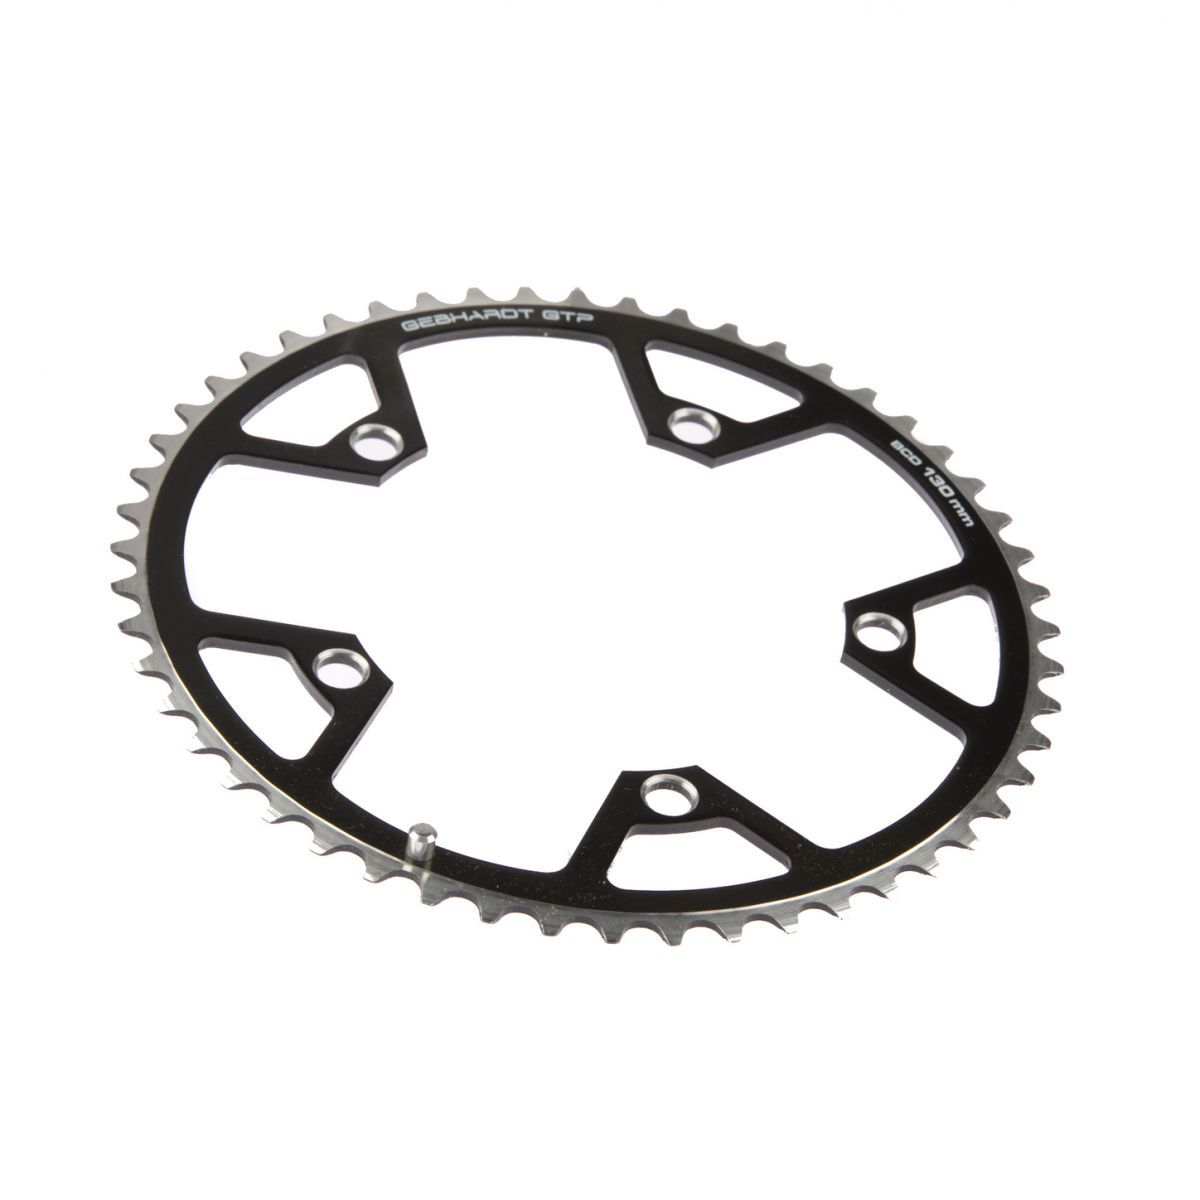 gebhardt chainring classic bcd 130 mm 5hole 48t black